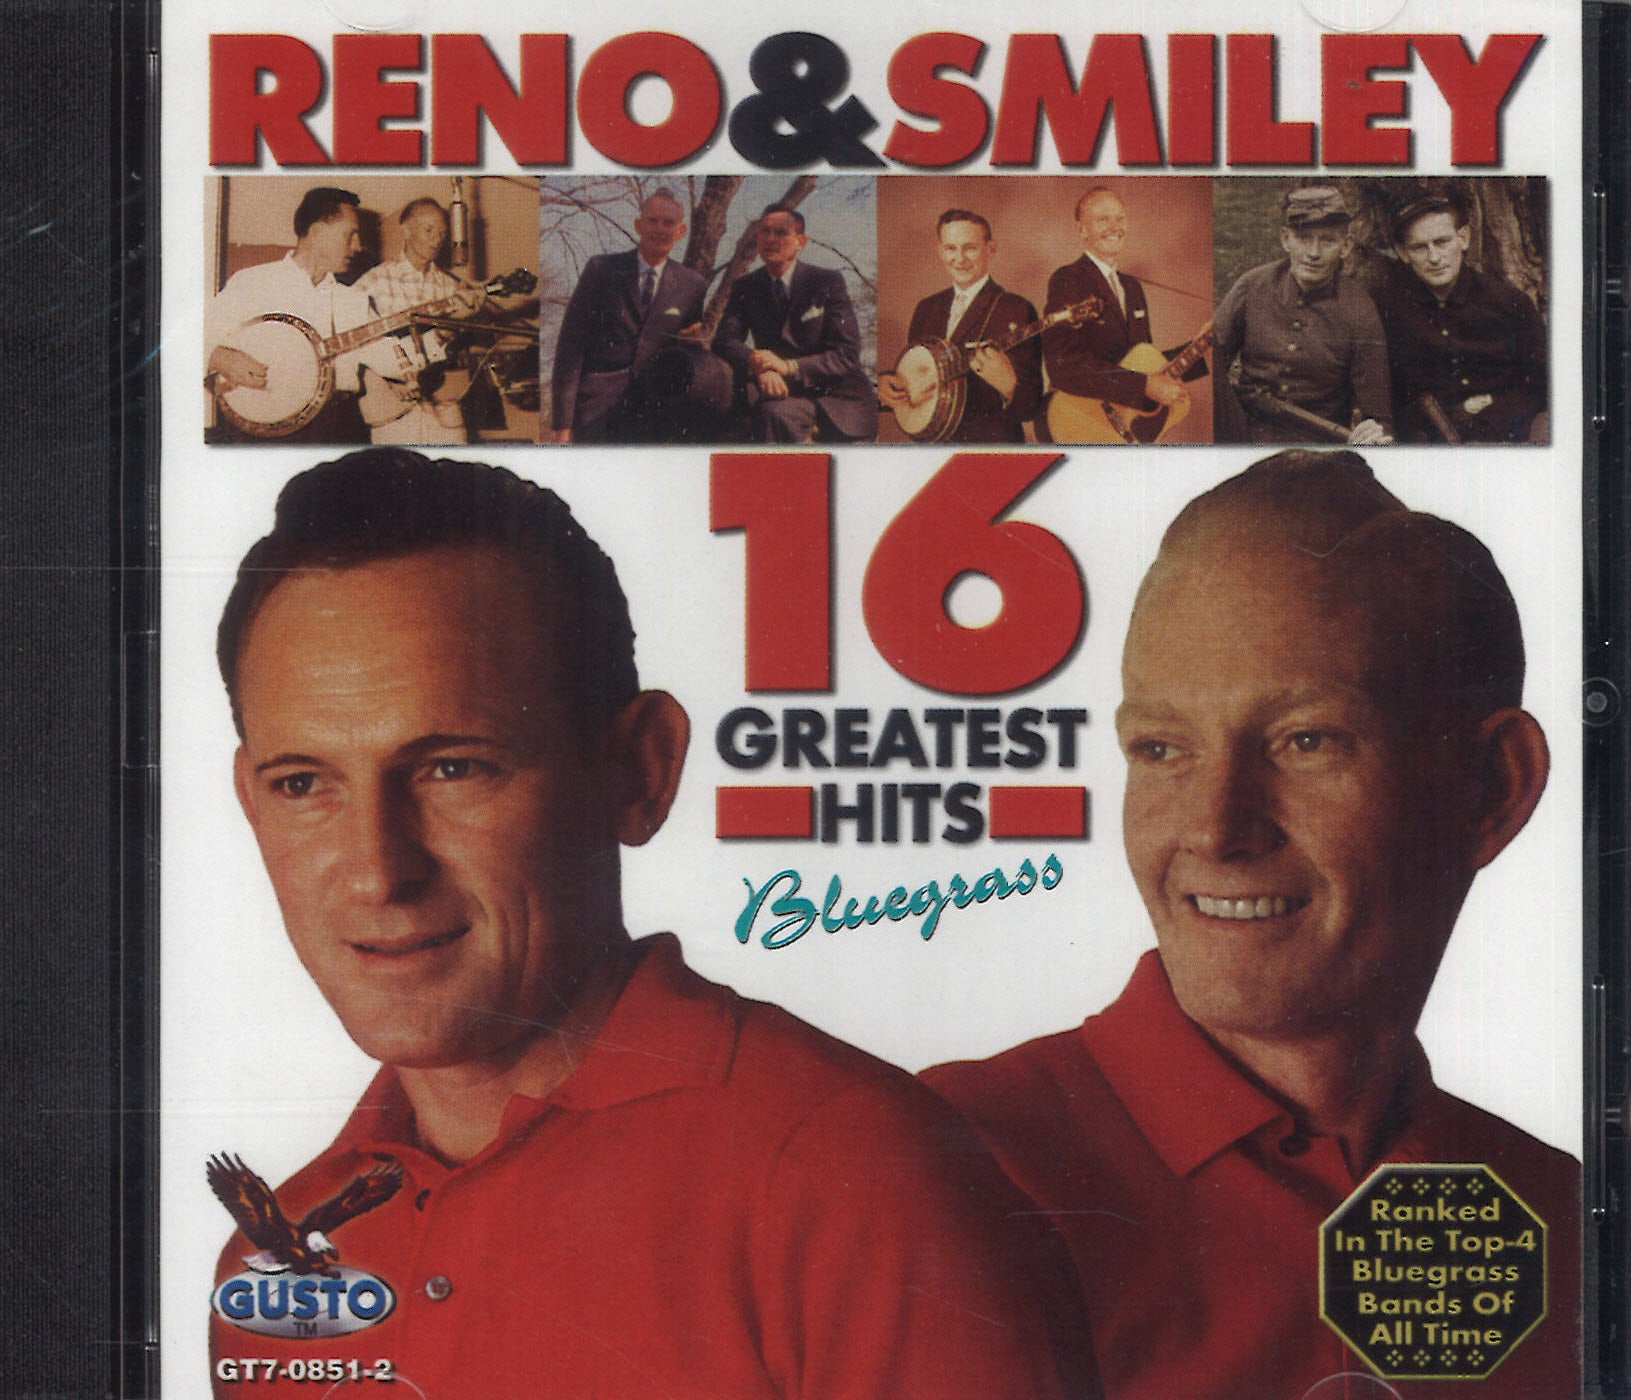 Reno & Smiley 16 Greatest Hits Bluegrass